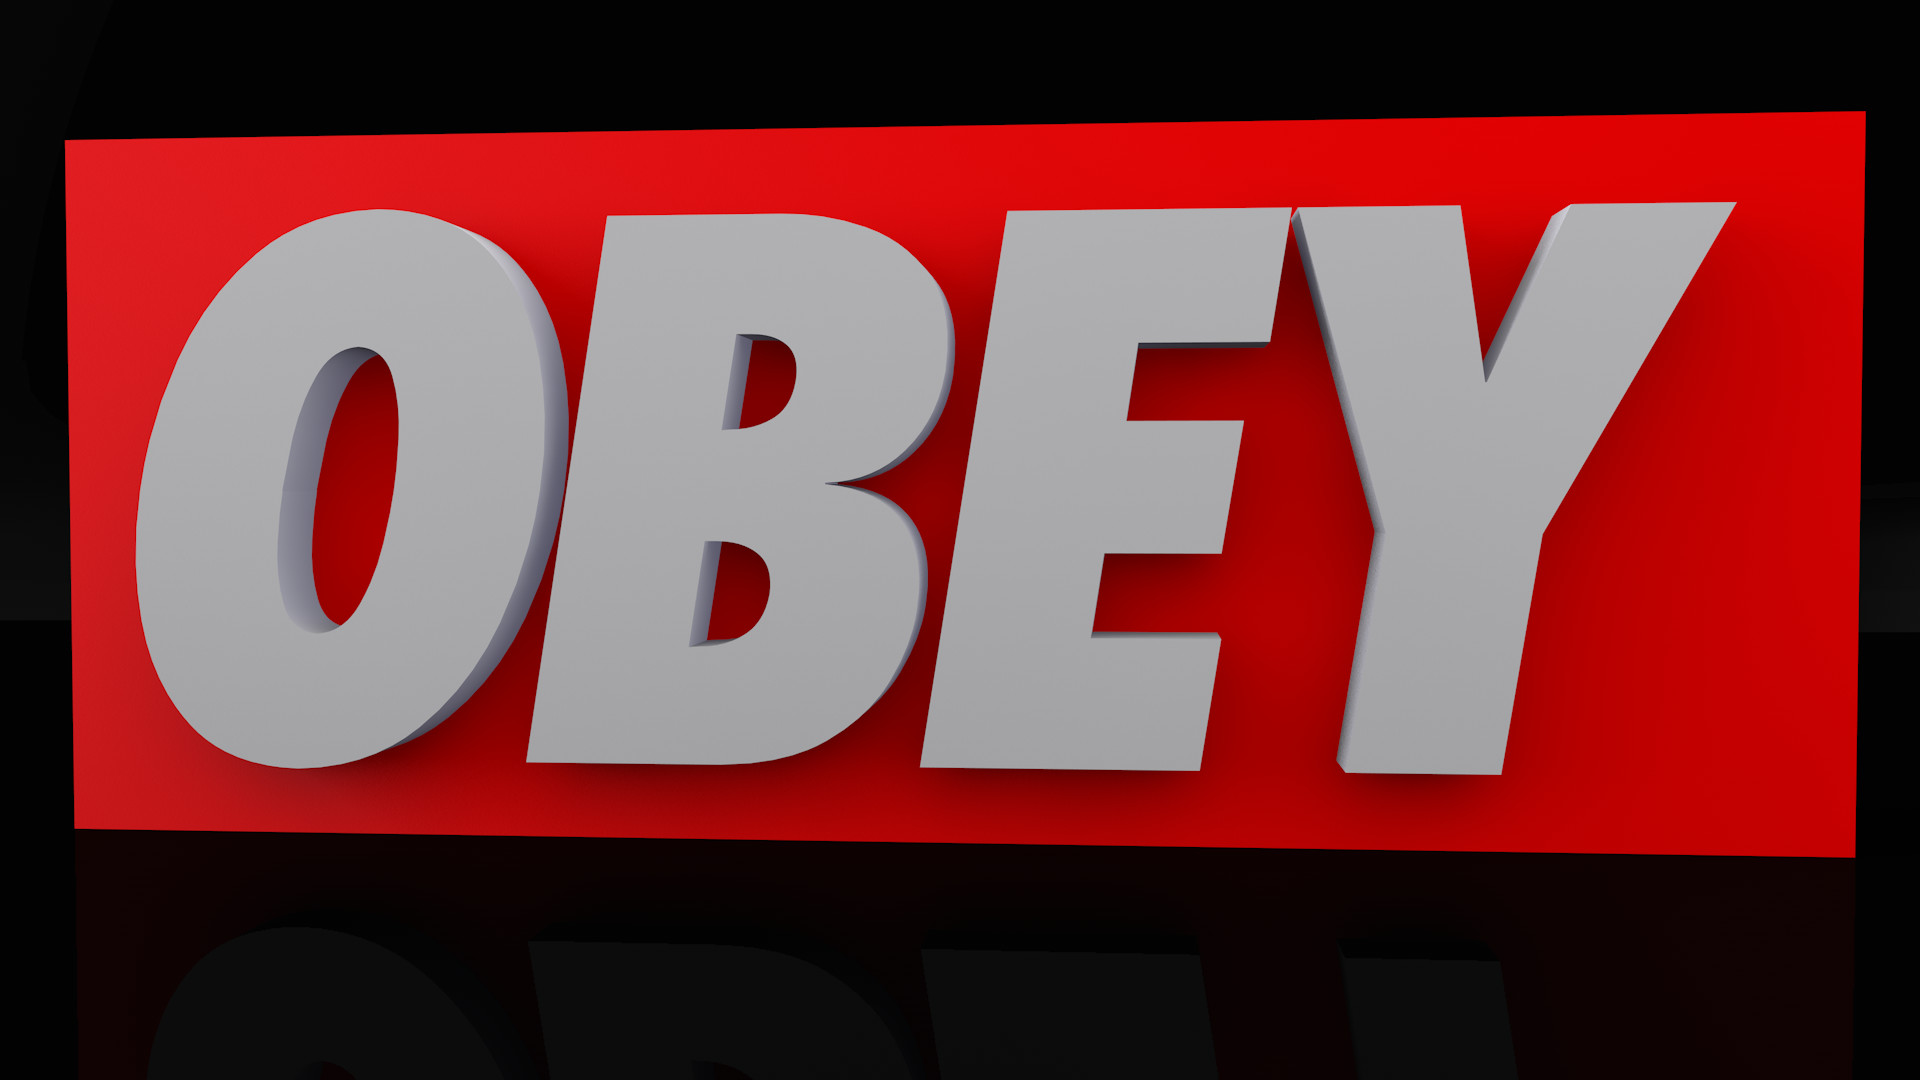 Top HDQ Obey Images